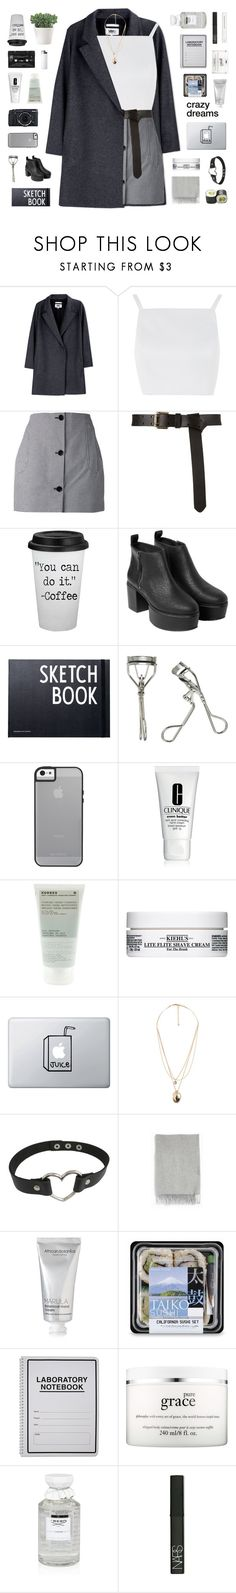 """""""- i know i won't be your cry baby"""" by philosoqhy ❤ liked on Polyvore featuring MM6 Maison Margiela, Topshop, Carven, Floyd, Monki, Design Letters, Japonesque, Fujifilm, Clinique and Korres"""